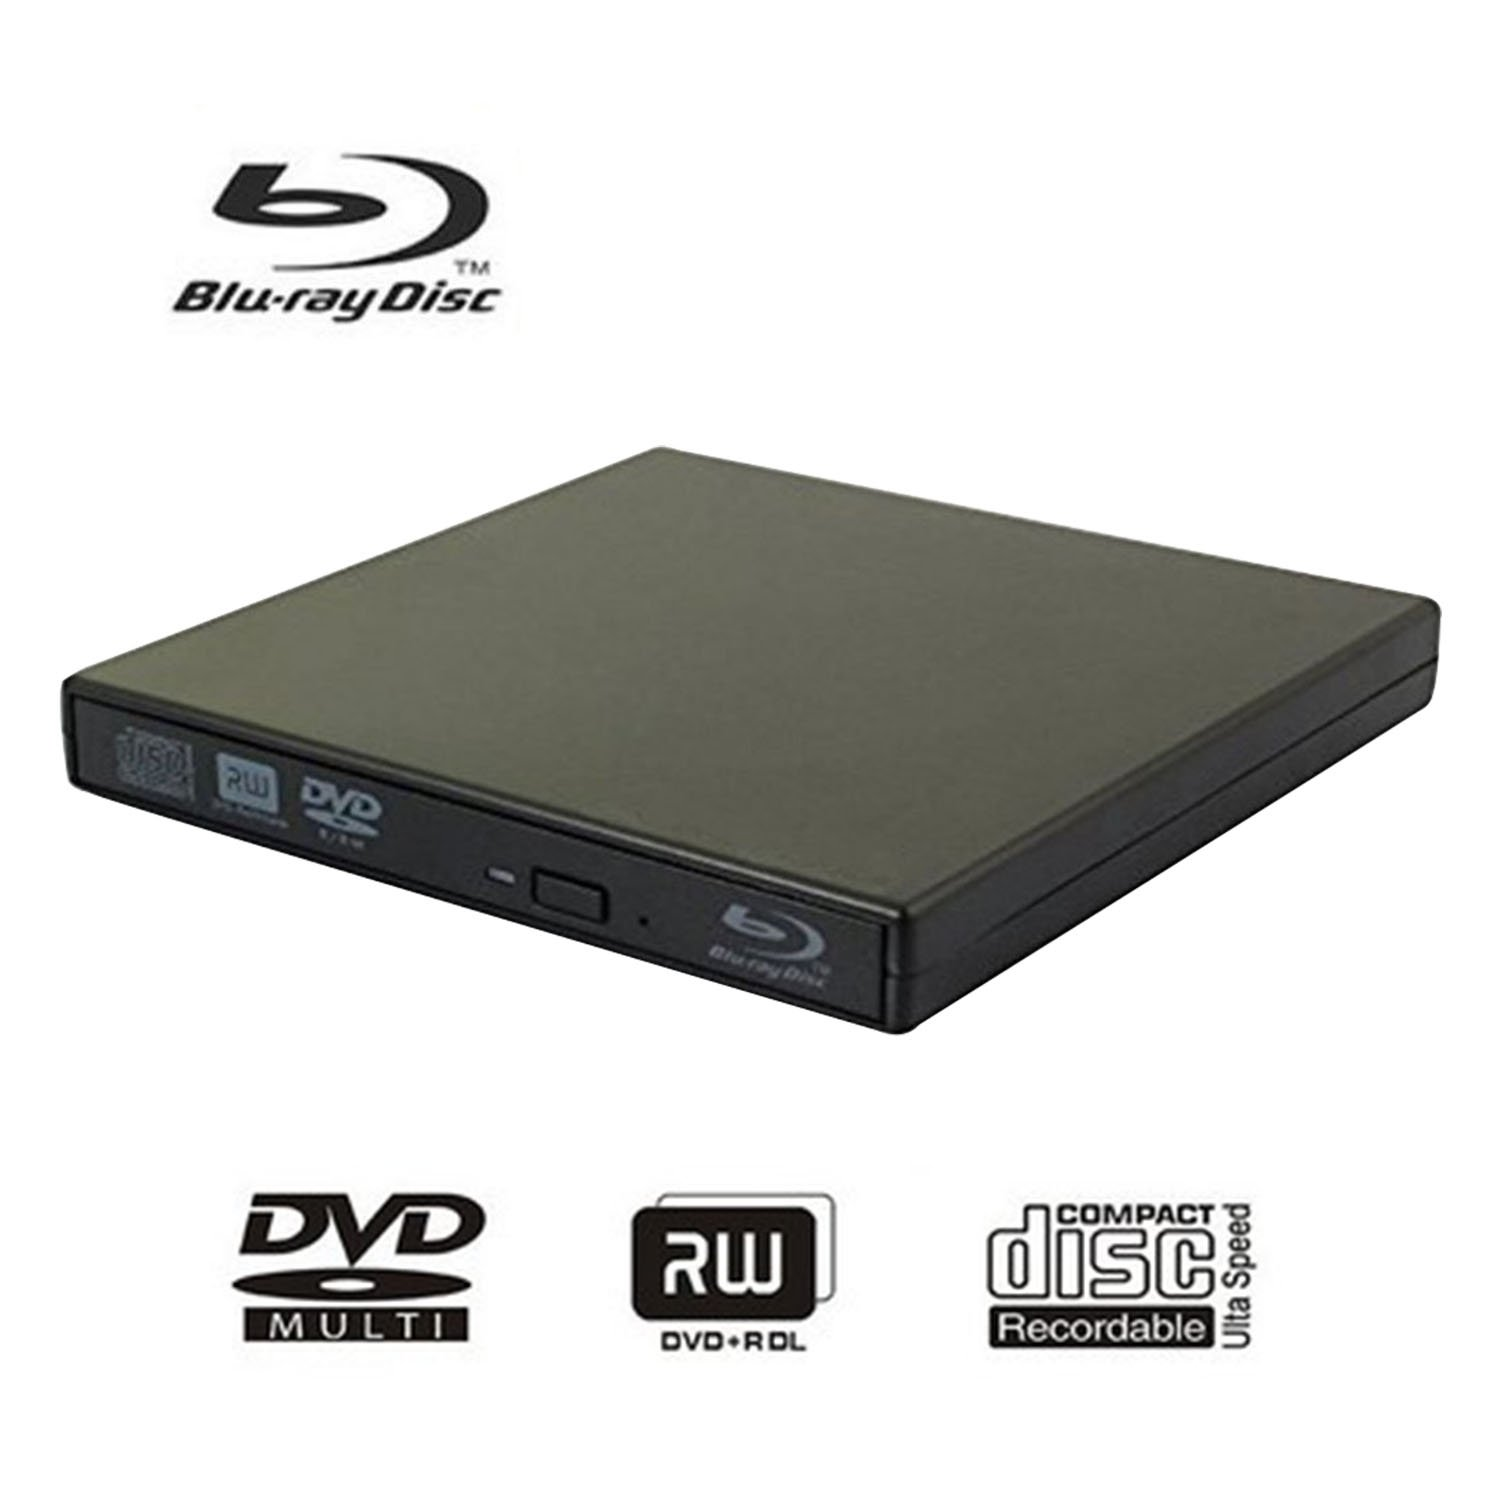 External blu-ray disc drive, USB portable DVD burner,BD-ROM,DVD/CD-RW/ROM Writer/Player,Support xp/win/Linux system related desktop, notebook, etc (black)